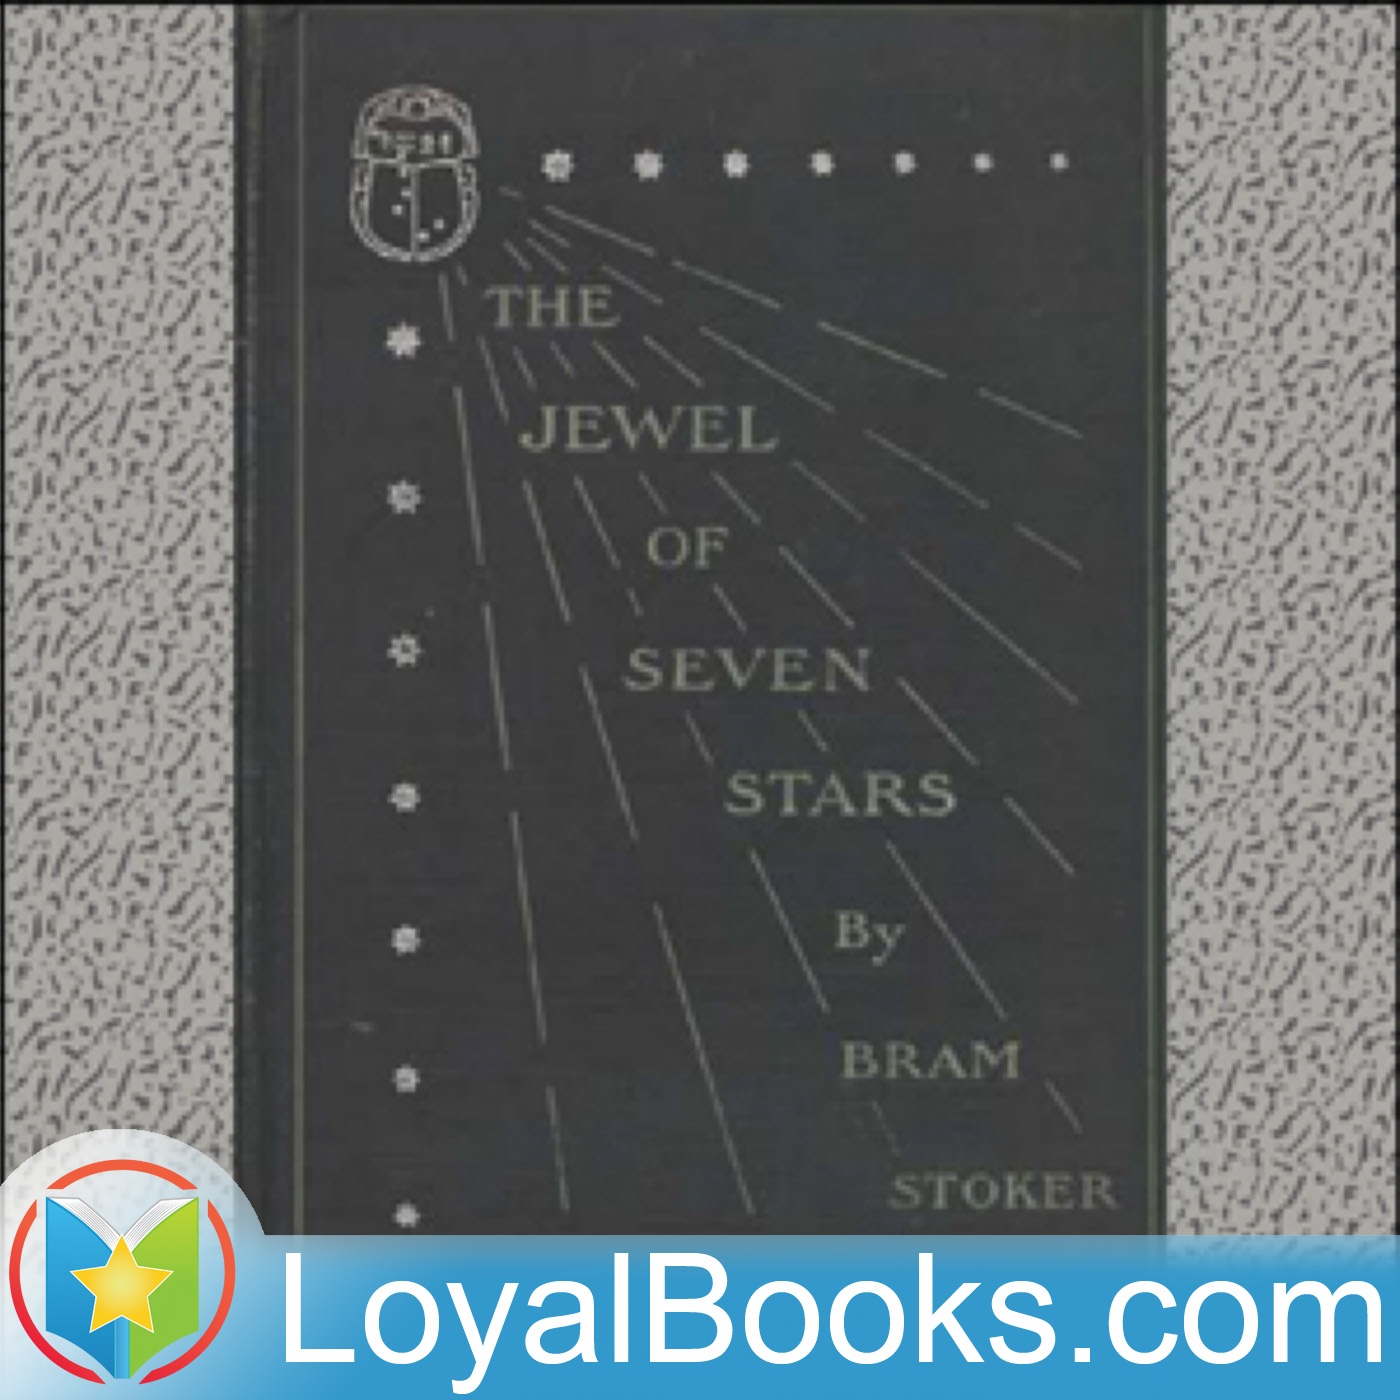 <![CDATA[The Jewel of Seven Stars by Bram Stoker]]>